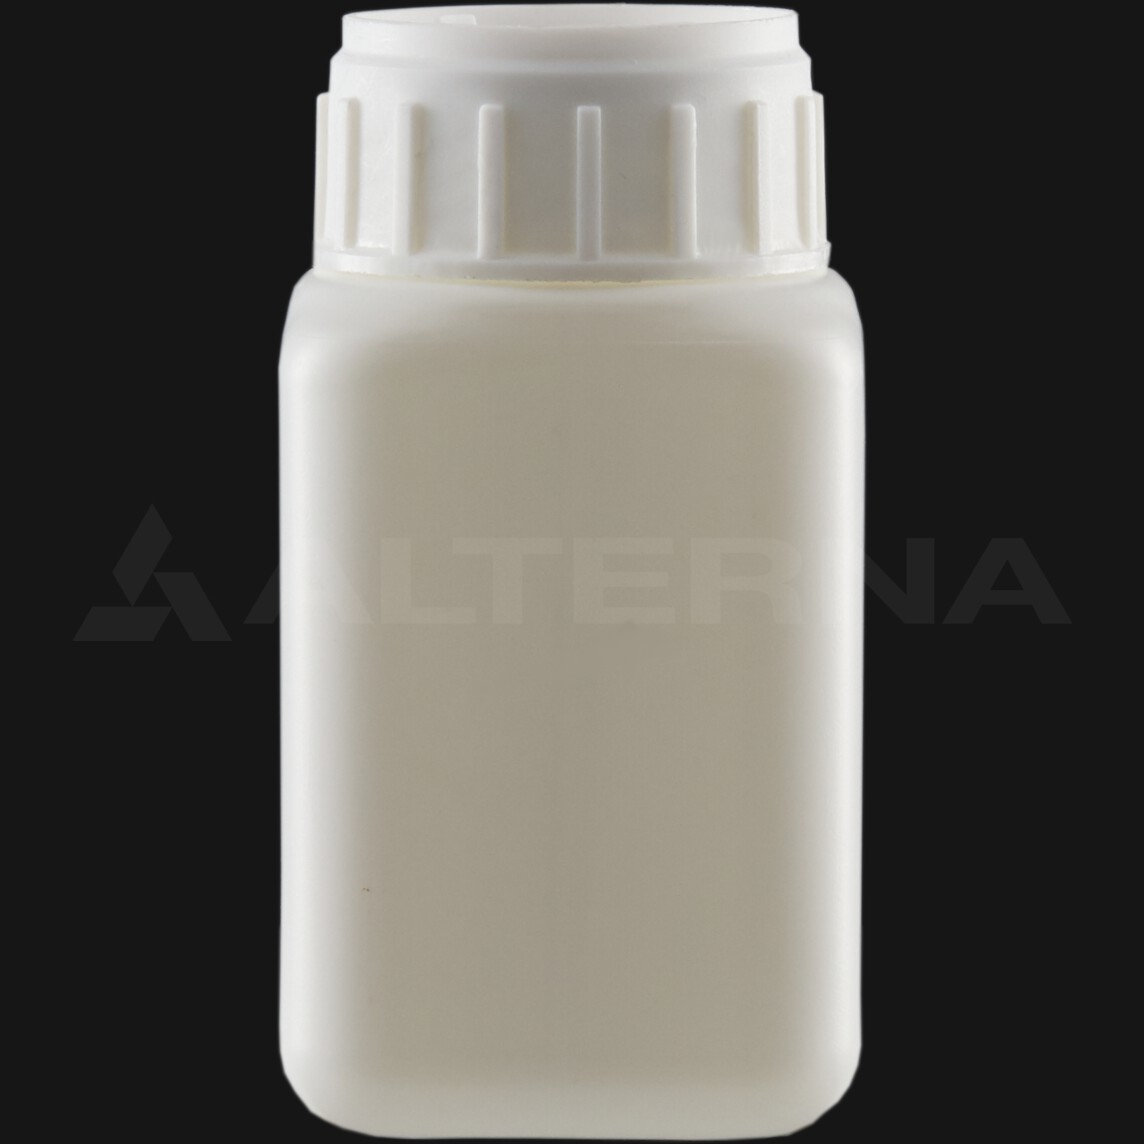 100 ml HDPE Square Bottle with 38 mm Alu. Foil Seal Cap